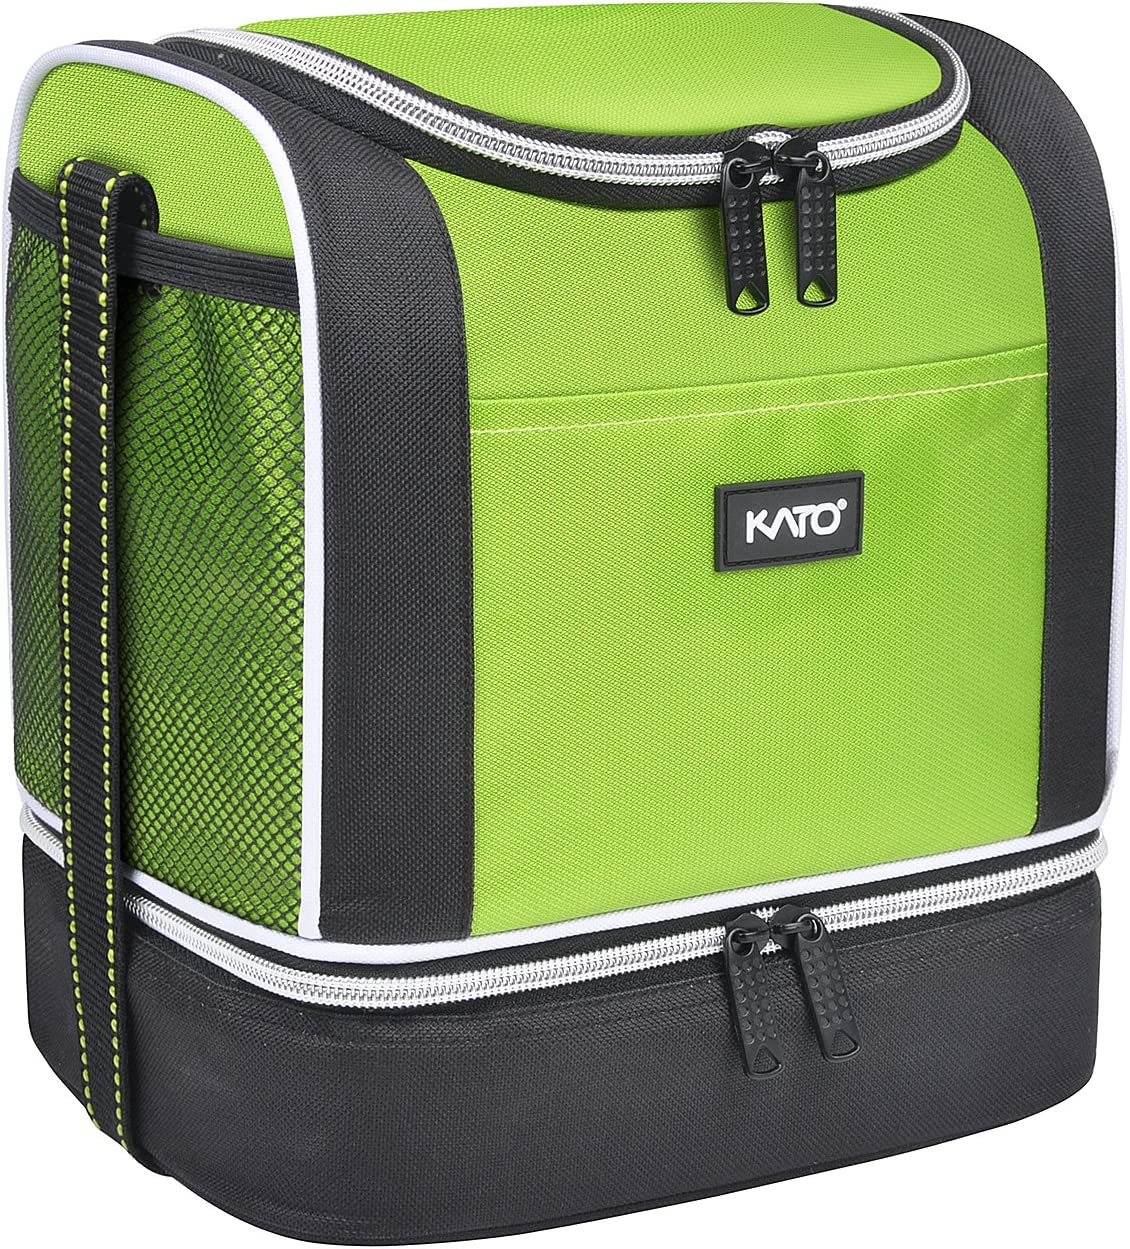 Kato Insulated Lunch Bag, Dual Compartment Portable Bento Cooler Totes for Men and Women, Green